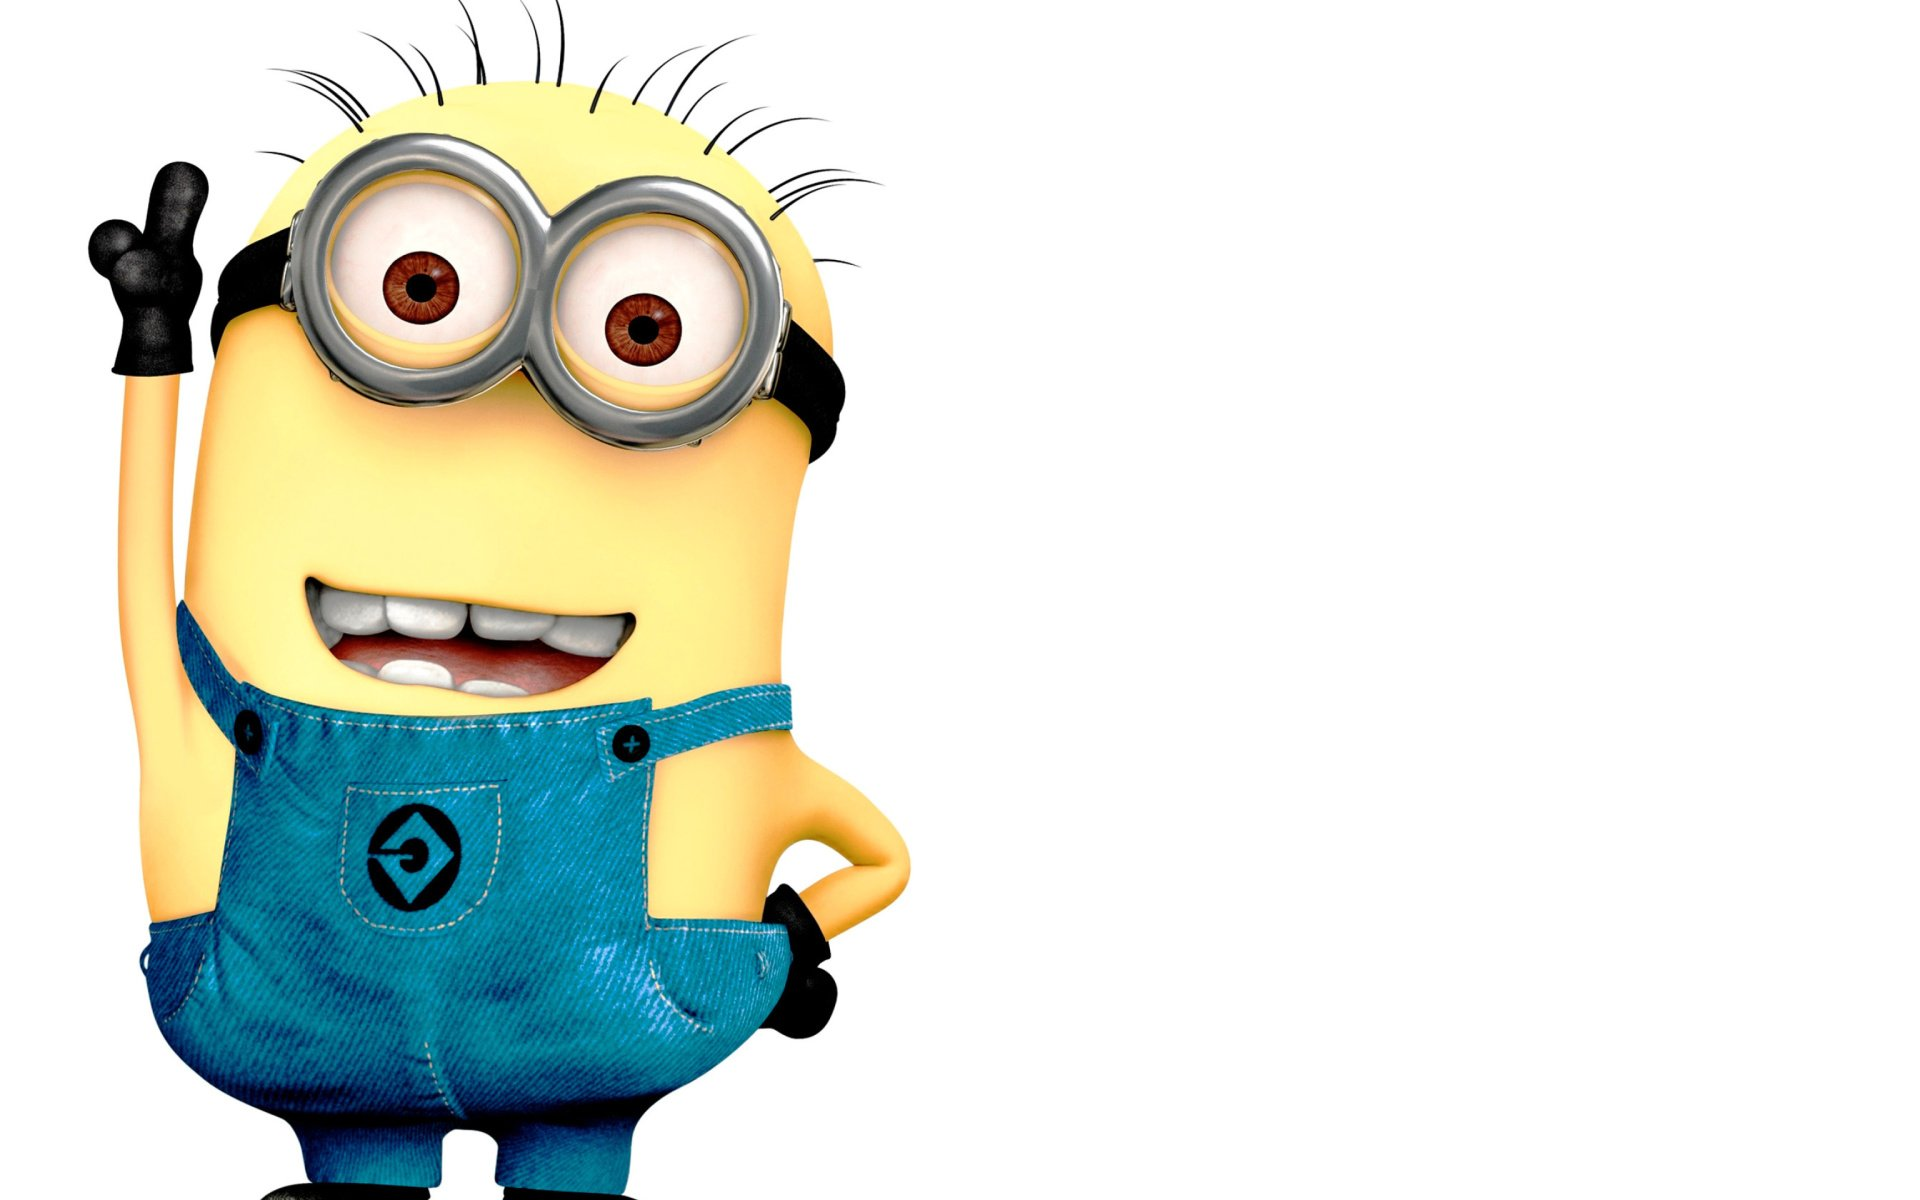 minion wallpaper 1920 x 1080 - wallpapersafari